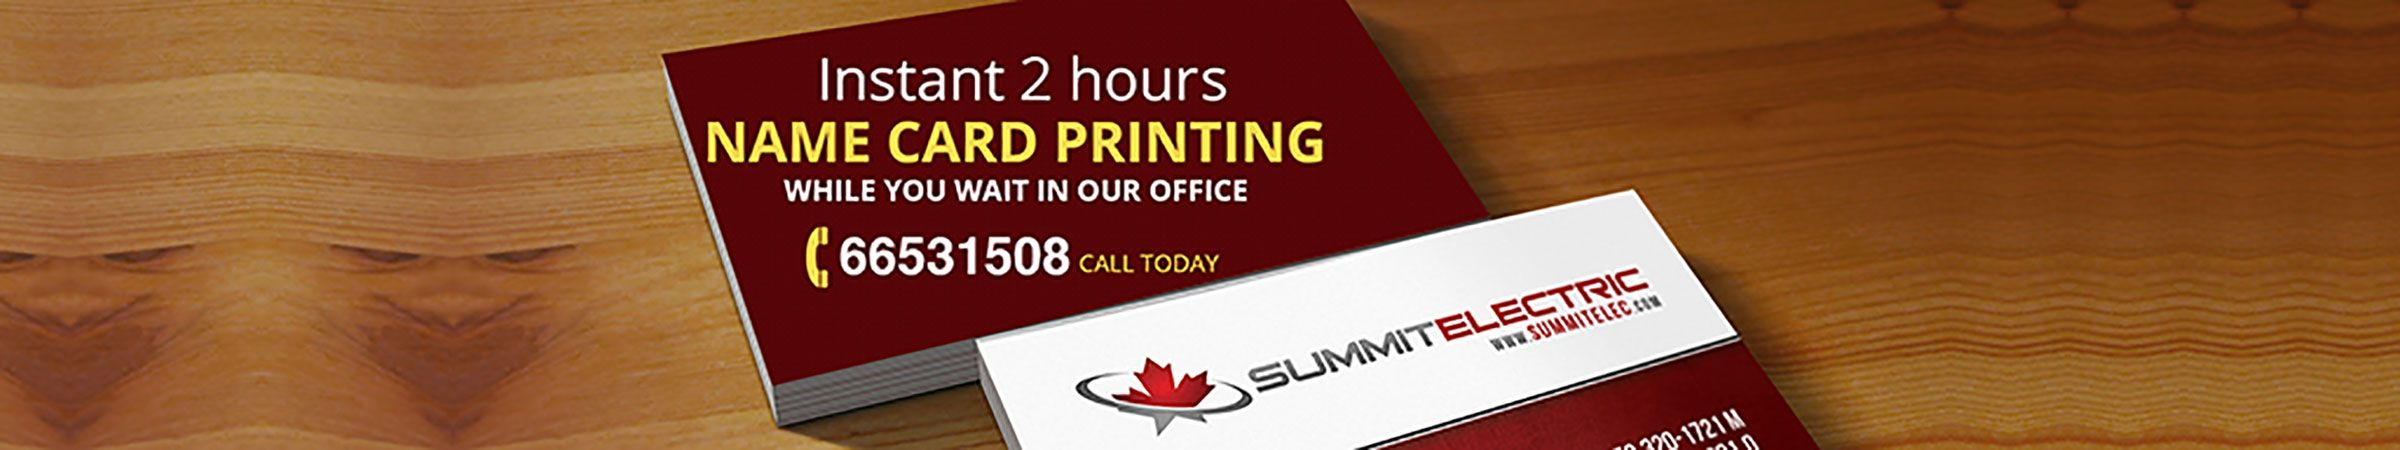 Name card printing is the leading business card printing name card printing is the leading business card printing specialist in singapore to offer name card printing services at affordable cost reheart Gallery